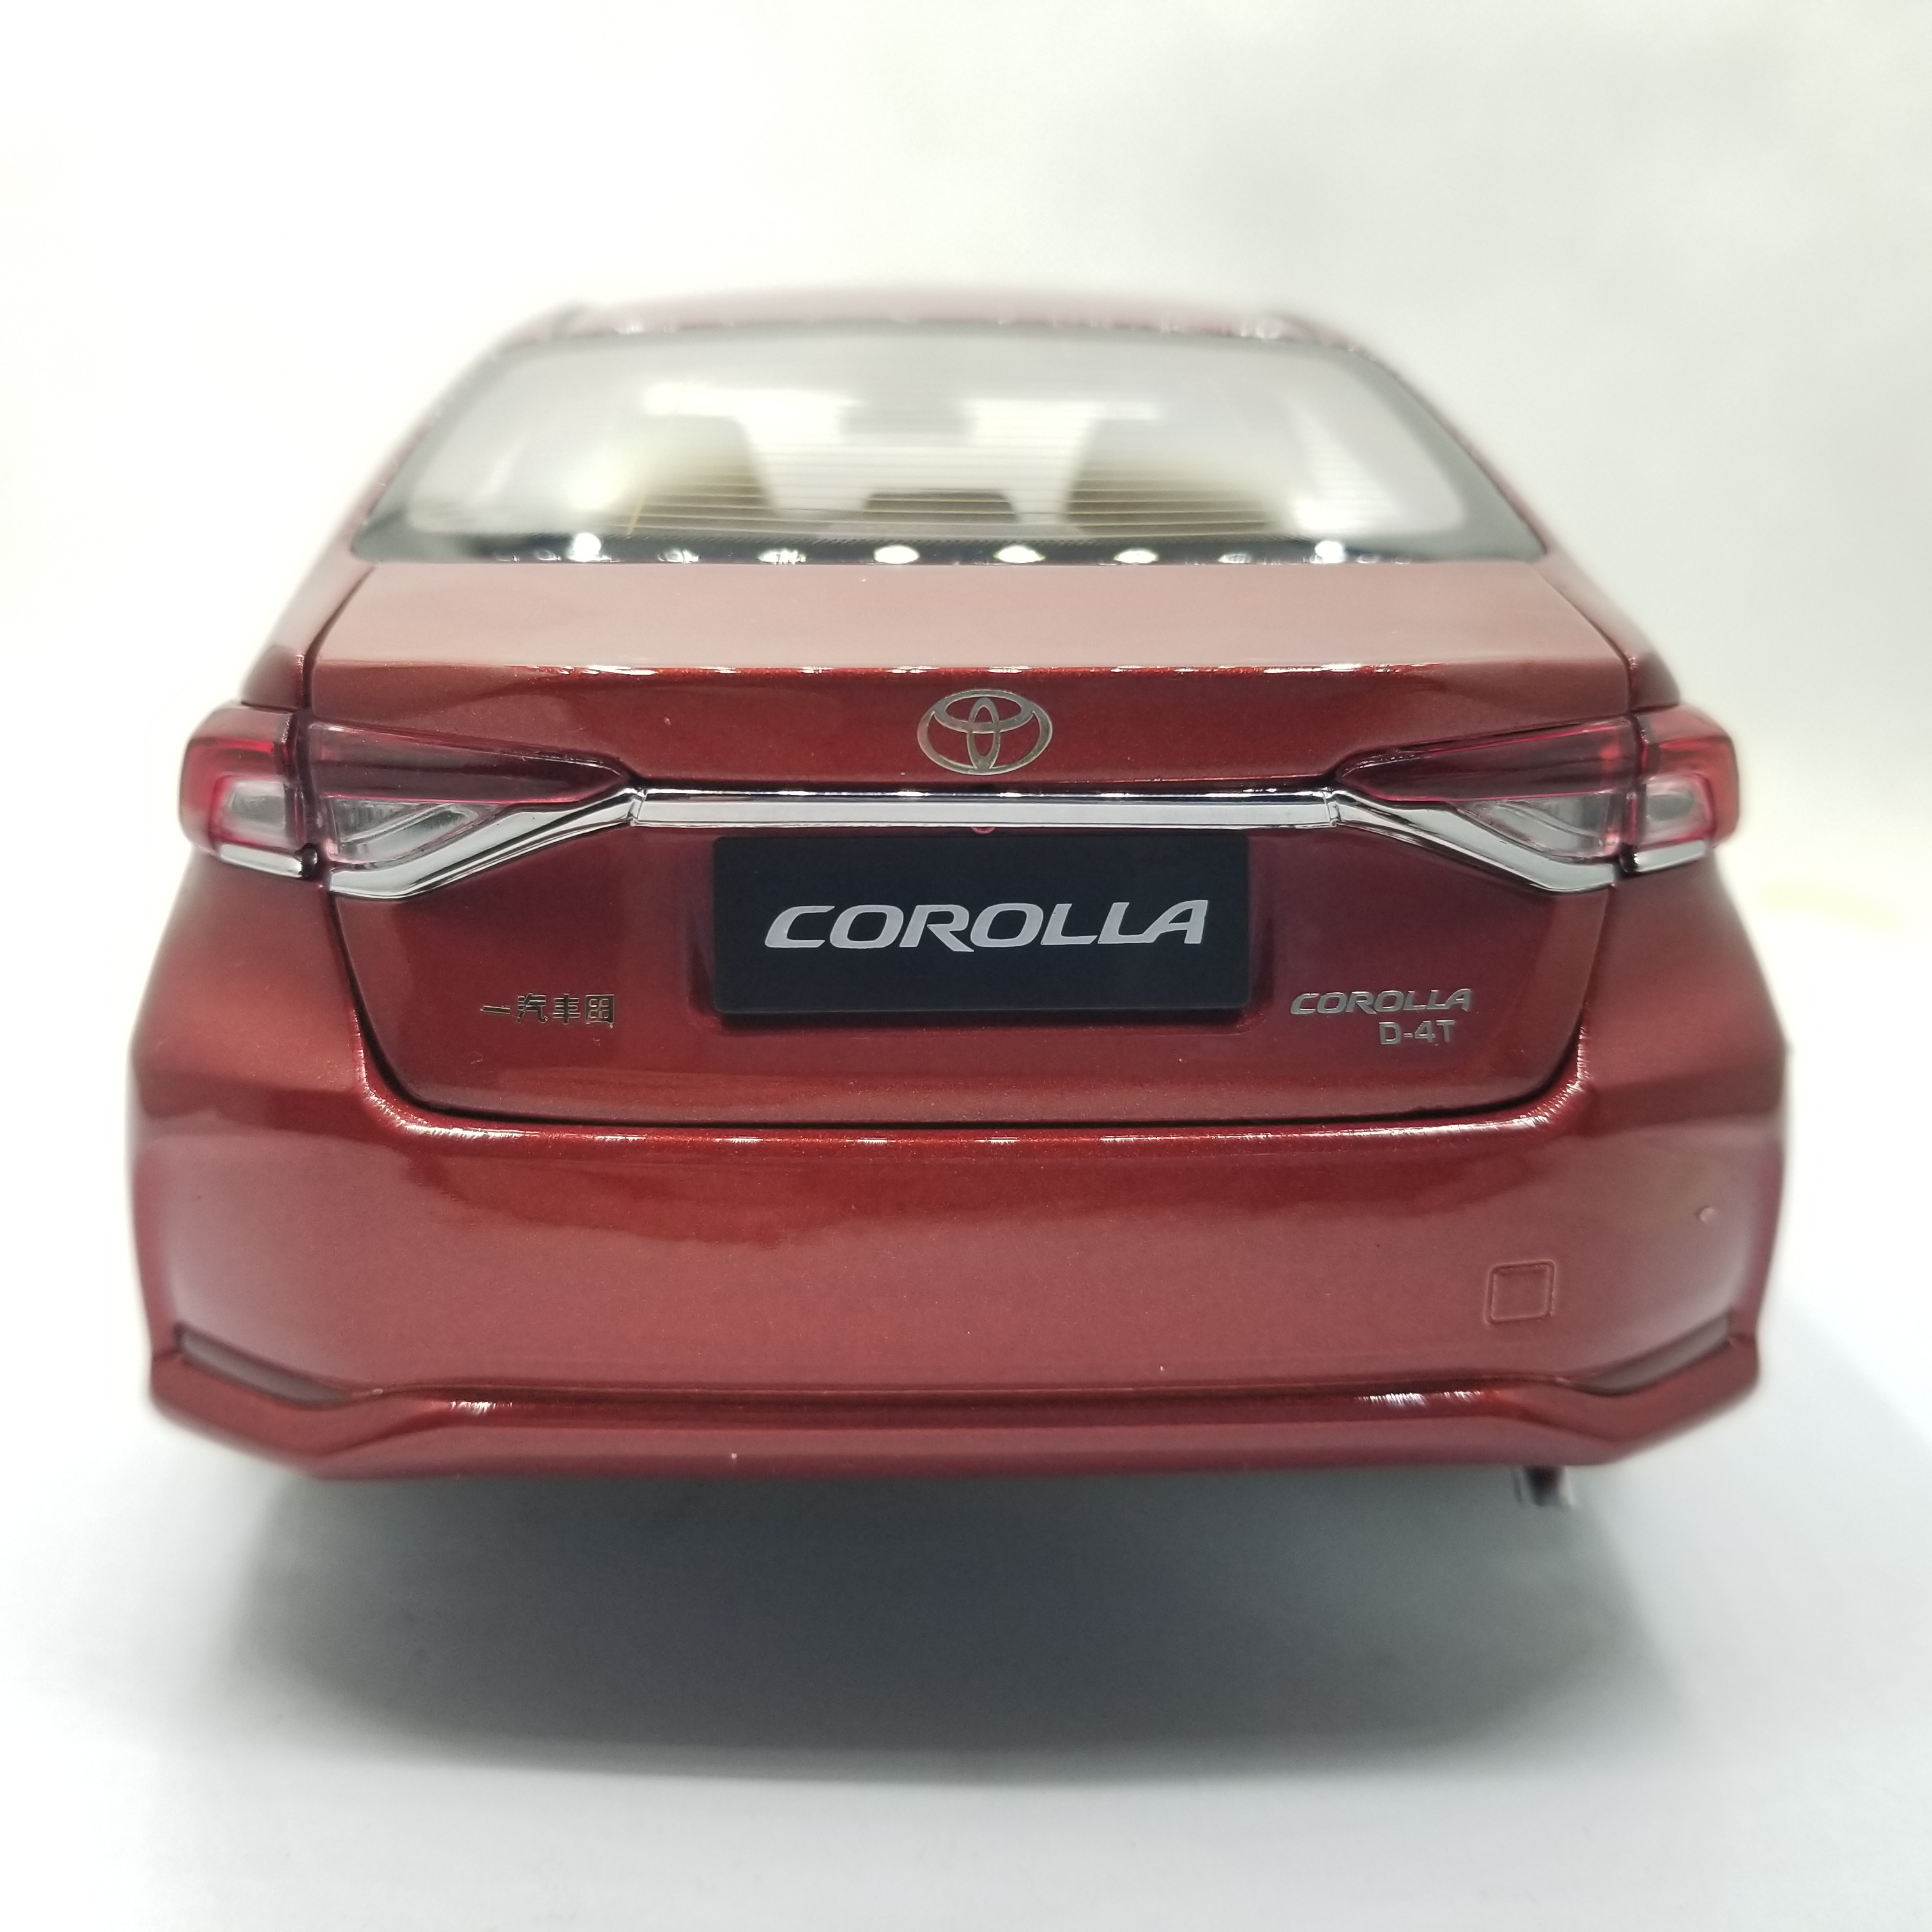 1:18 Diecast Model for Toyota Corolla 2019 Red Sedan Alloy Toy Car Miniature Collection Gifts Hot Selling Altis